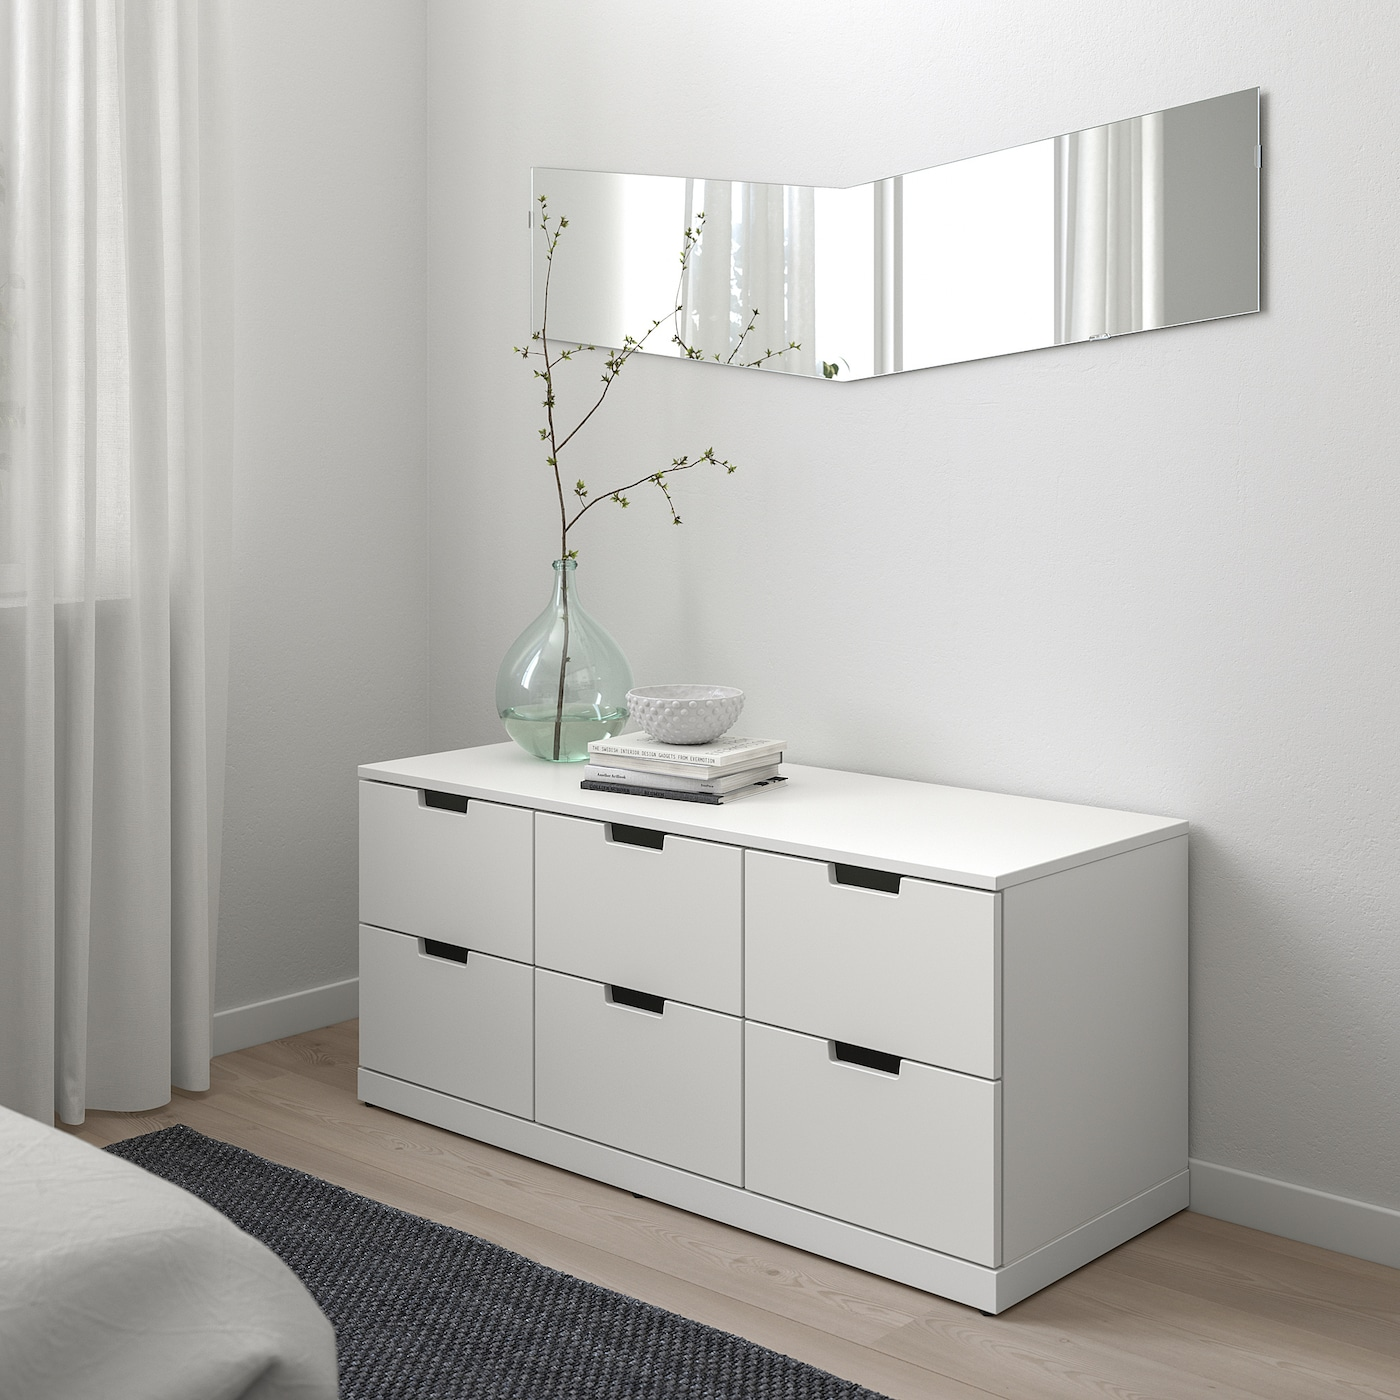 NORDLI 6-drawer dresser, white, 47 1/4x21 1/4 ""